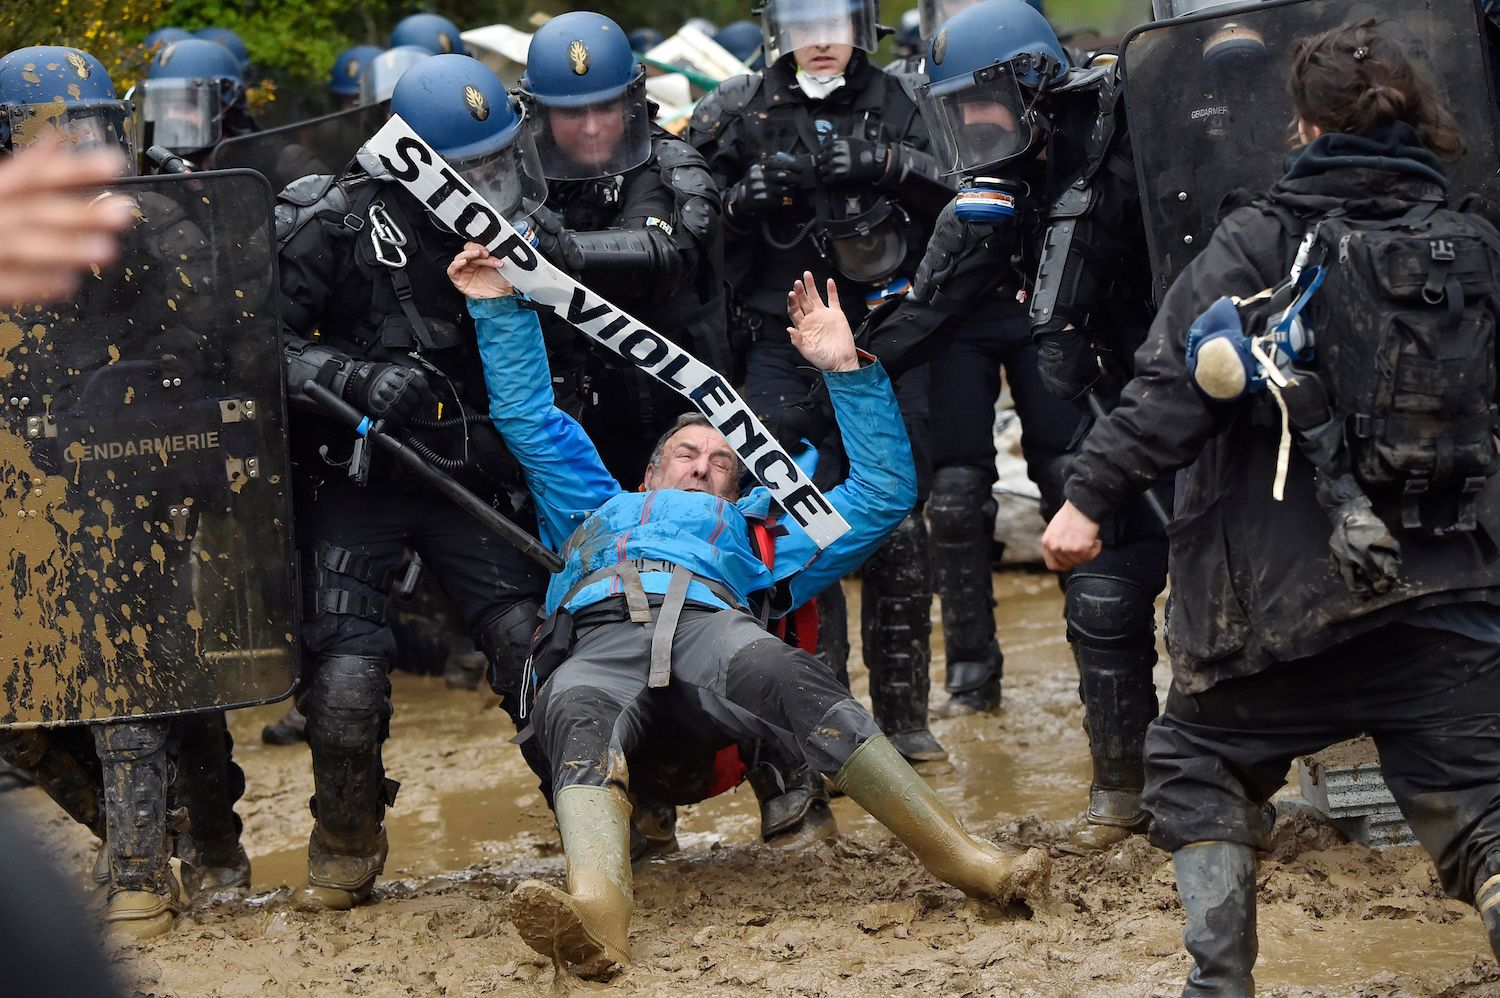 TOPSHOT - French gendarmes charge ZAD activists to clear an area known as ZAD (Zone a Defendre - Zone to defend) of environmental protesters occupying the site of what had been a proposed new airport in Notre dame des Landes on April 9, 2018.    / AFP PHOTO / LOIC VENANCE        (Photo credit should read LOIC VENANCE/AFP/Getty Images)